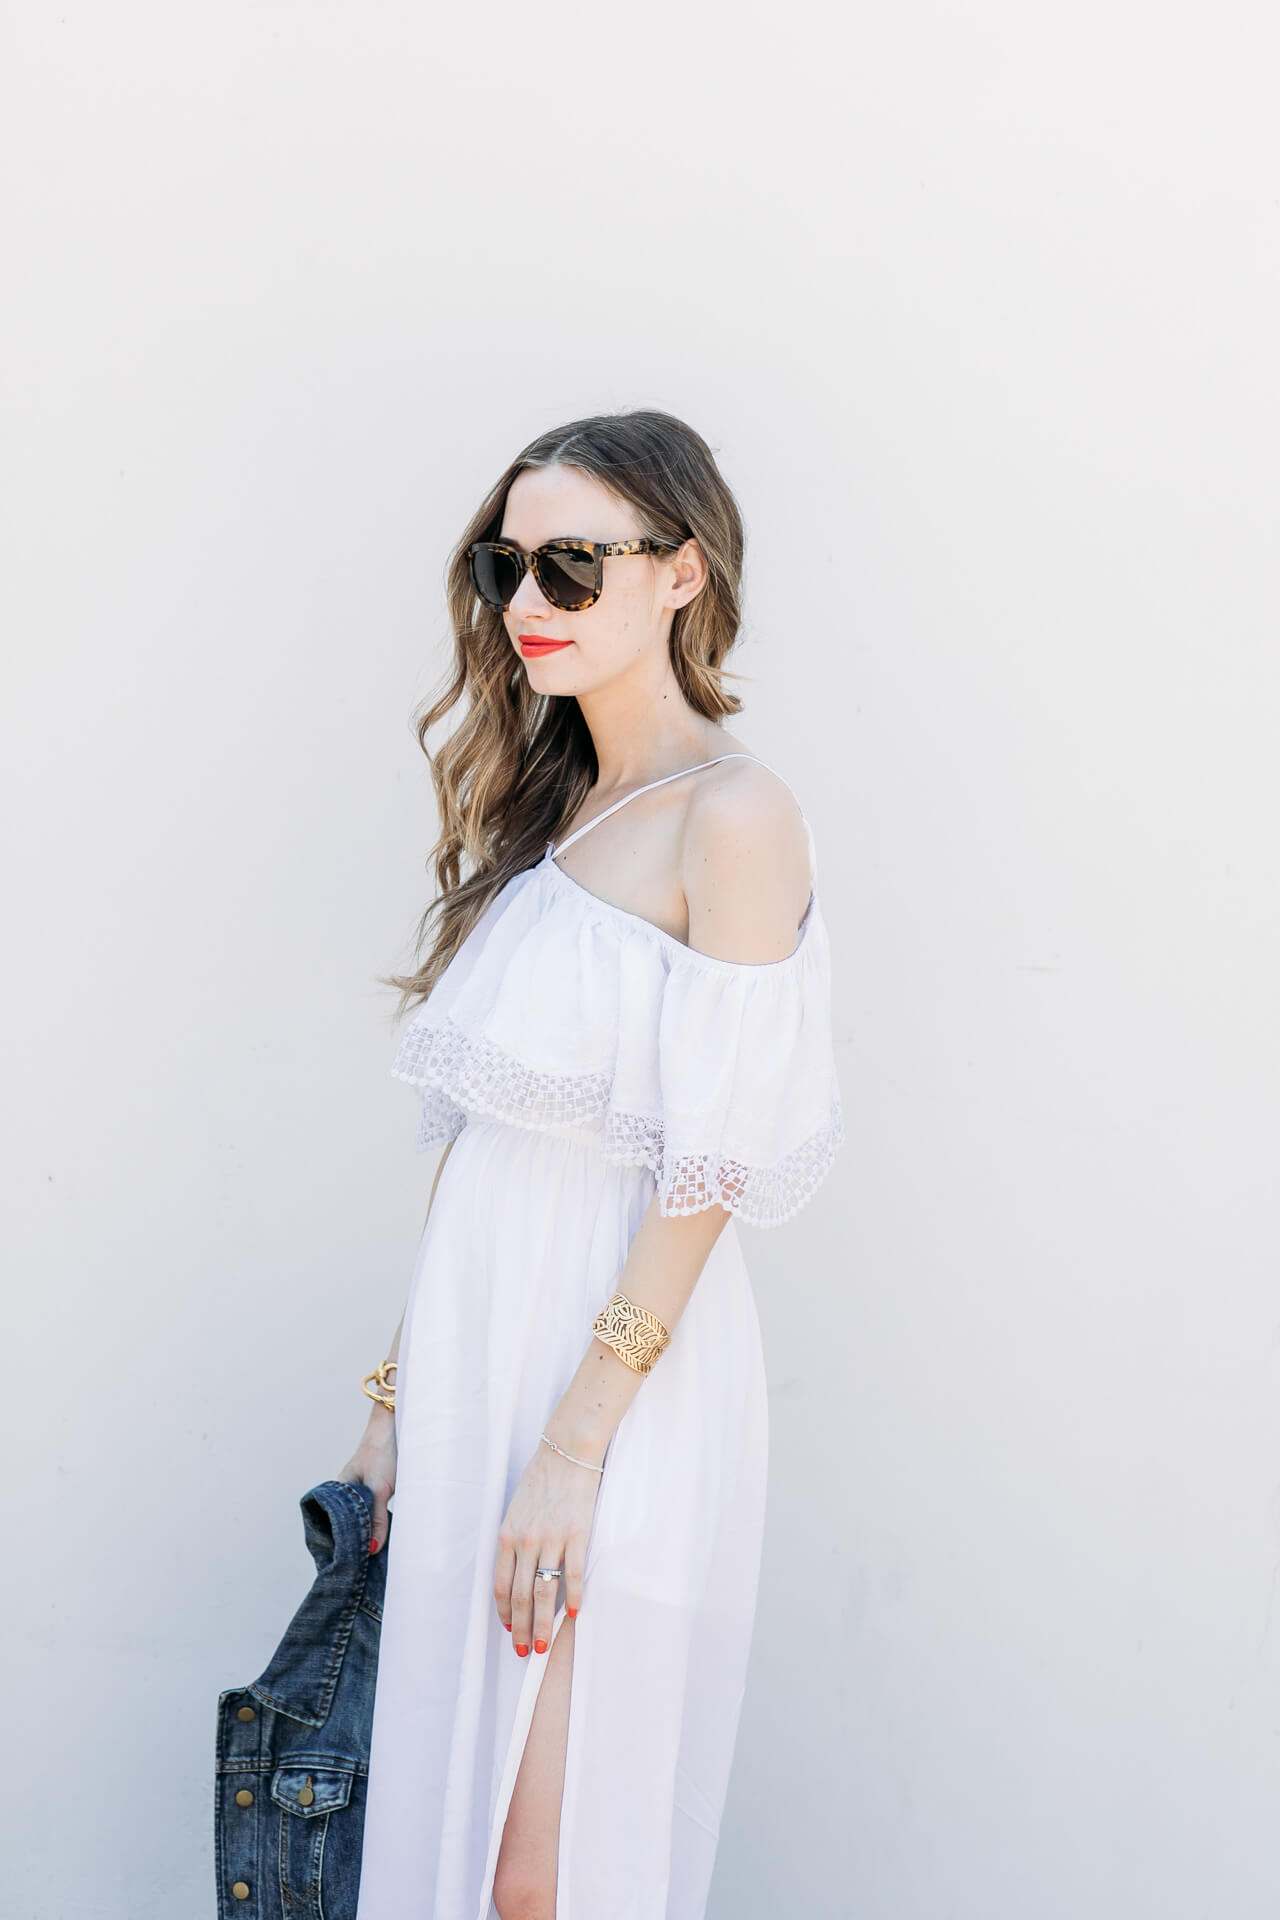 Dressing up or down for the fourth of July with red lip pop - M Loves M @marmar